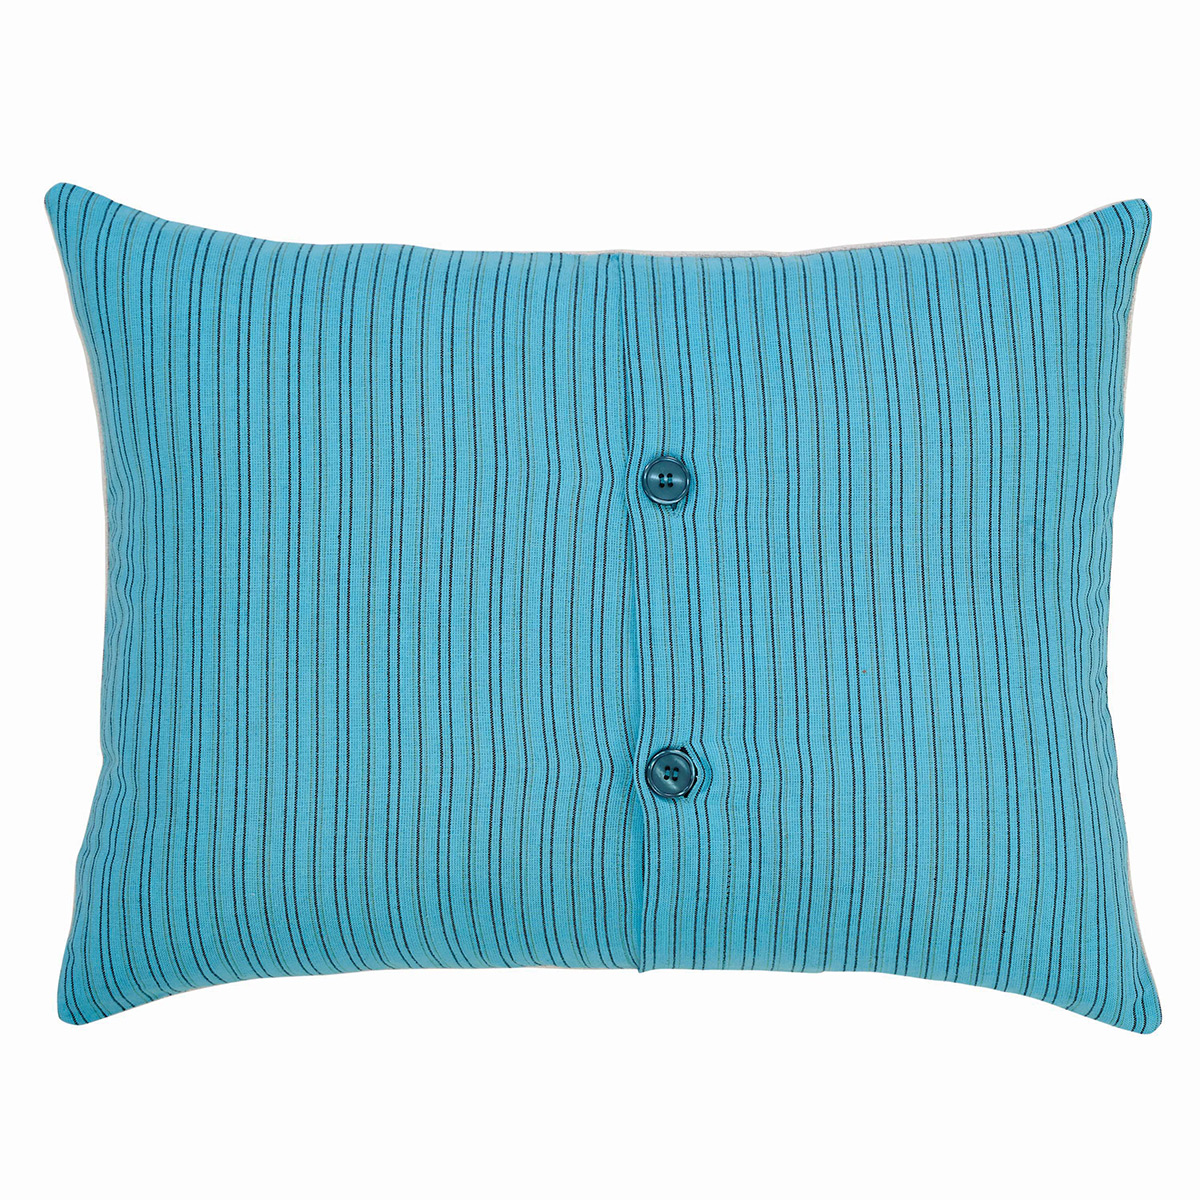 Nerine Mermaid Decorative Pillow, by VHC Brands. - The Weed Patch